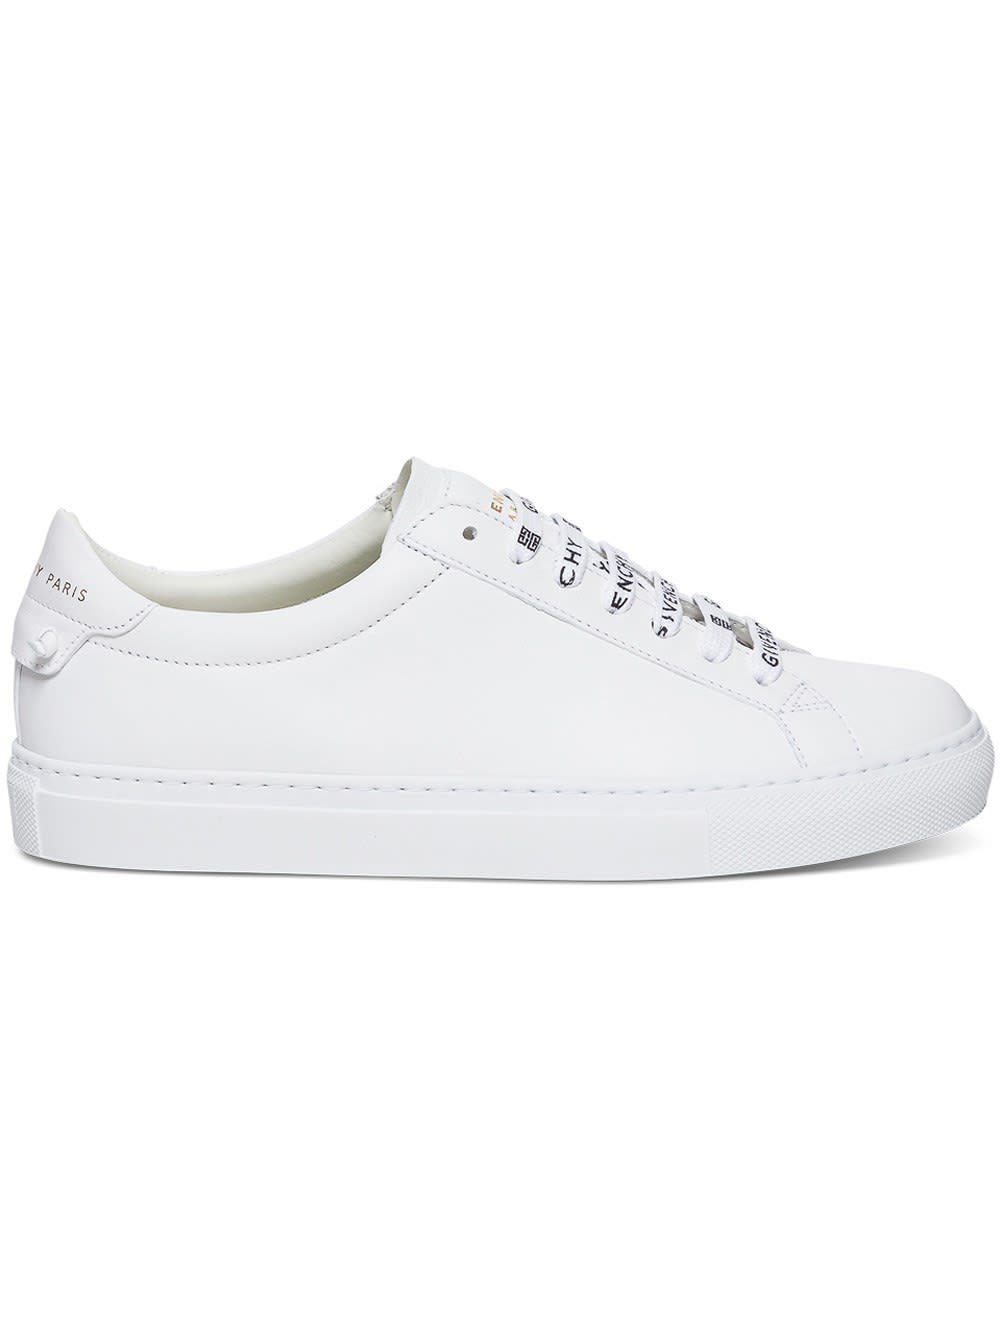 Givenchy Leathers URBAN STREET SNEAKERS